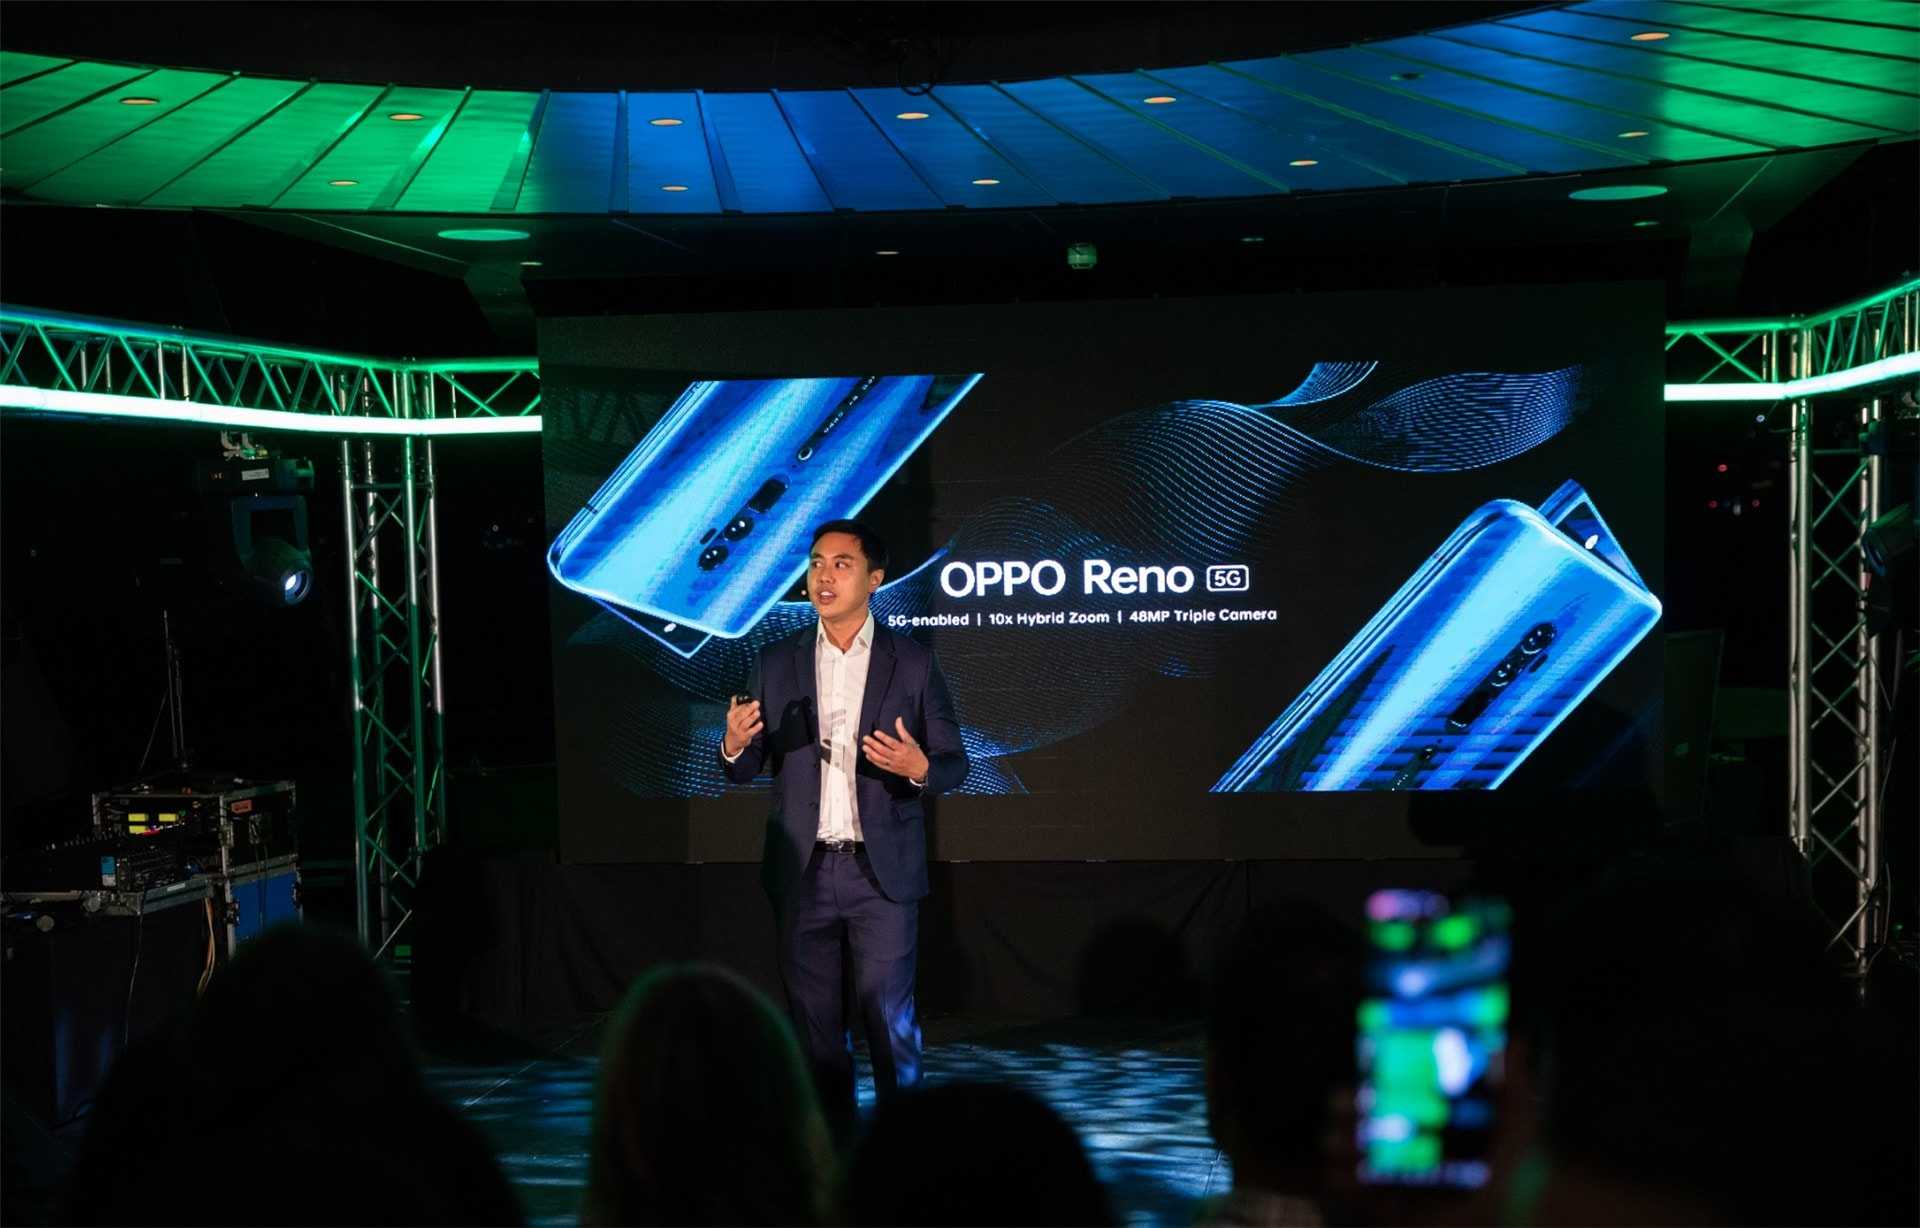 OPPO Australia announces the Reno series, comes with 5G and 10x Hybrid Zoom